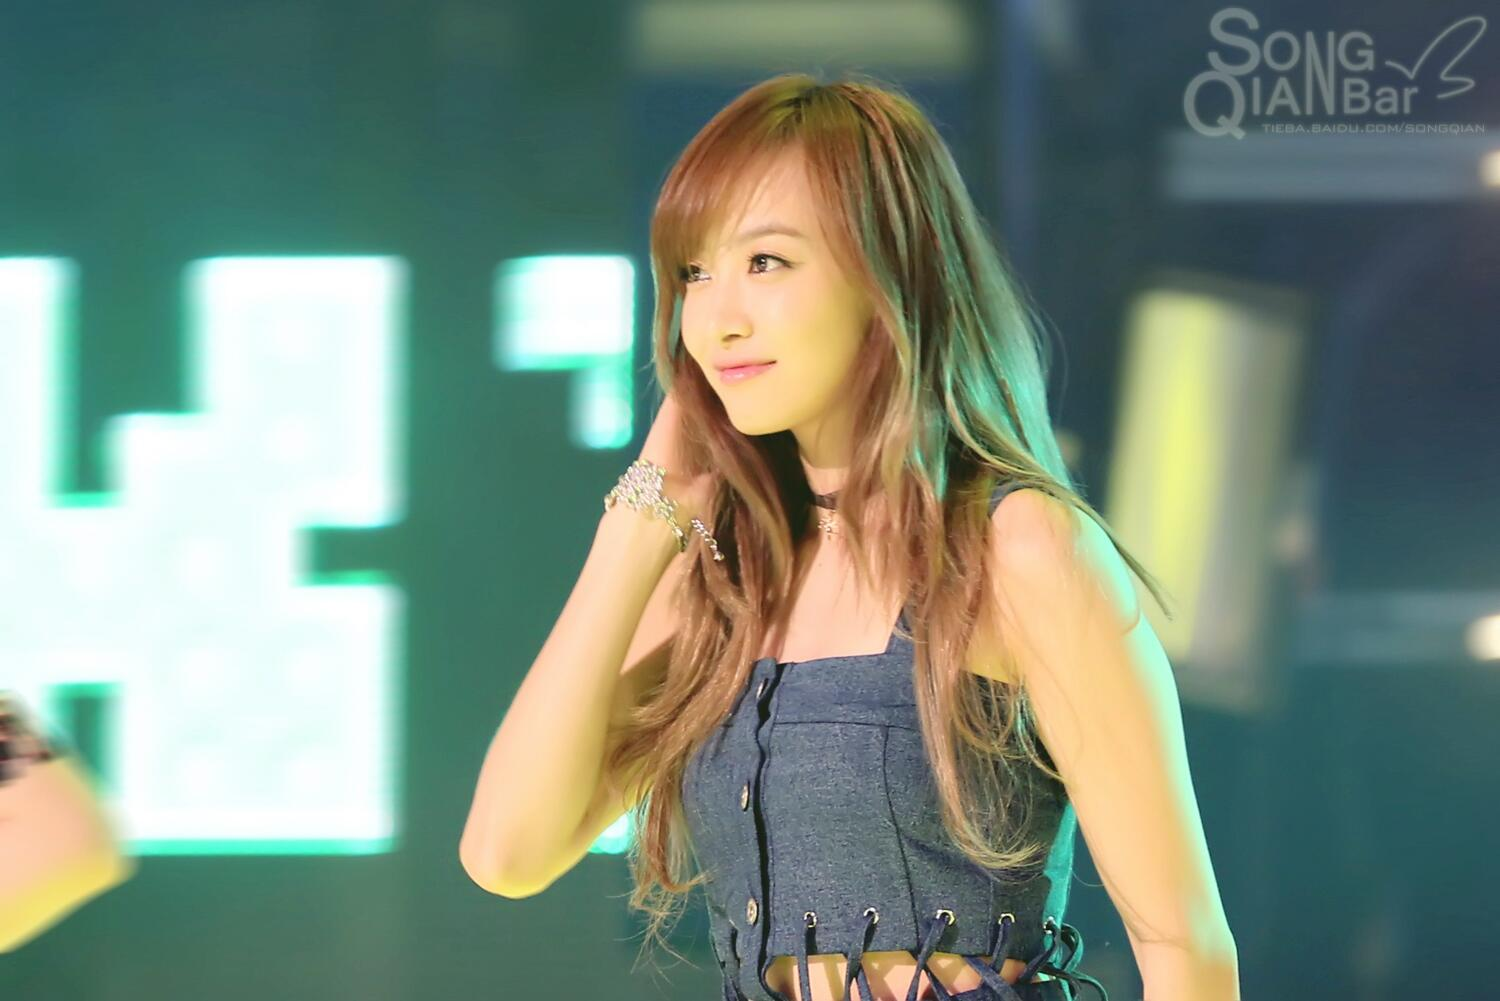 """Woah! Welcome to twitter! """"@SongQian_bar: [Exclusive] It's raining, it's snowing, but you are always shining. http://t.co/31MxlEt8nf"""""""